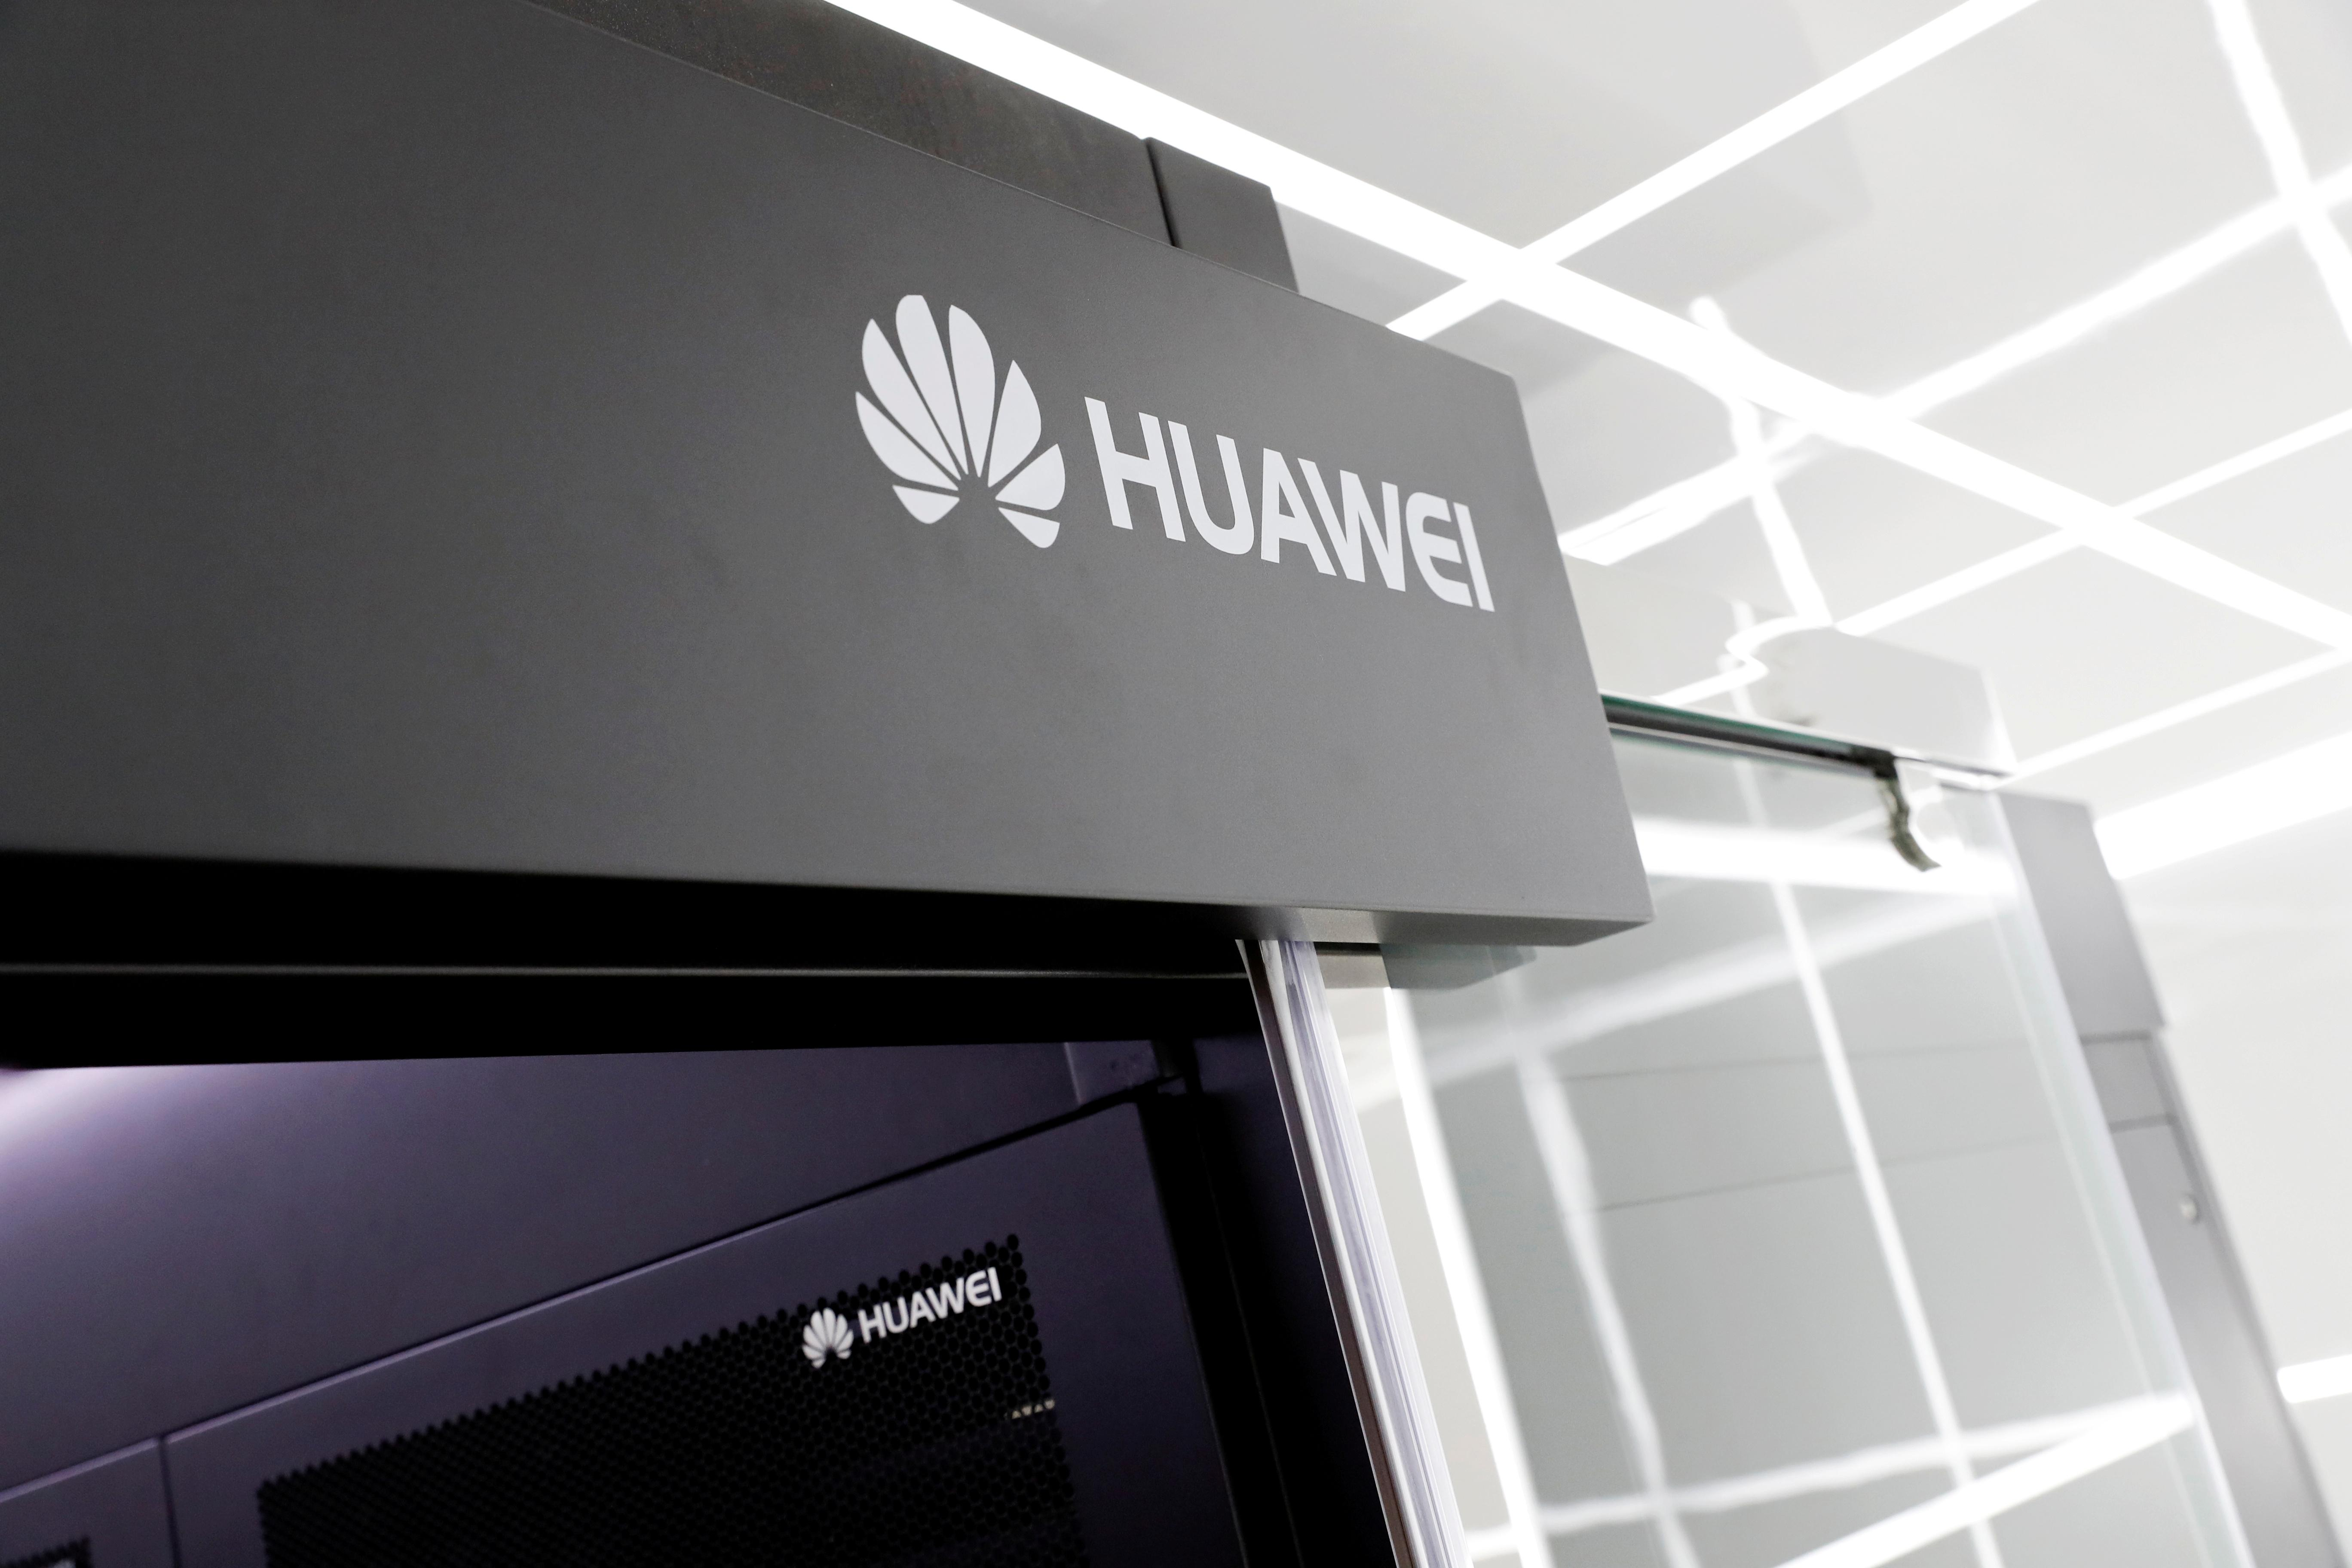 By spying on Huawei, U.S. found evidence against the Chinese firm